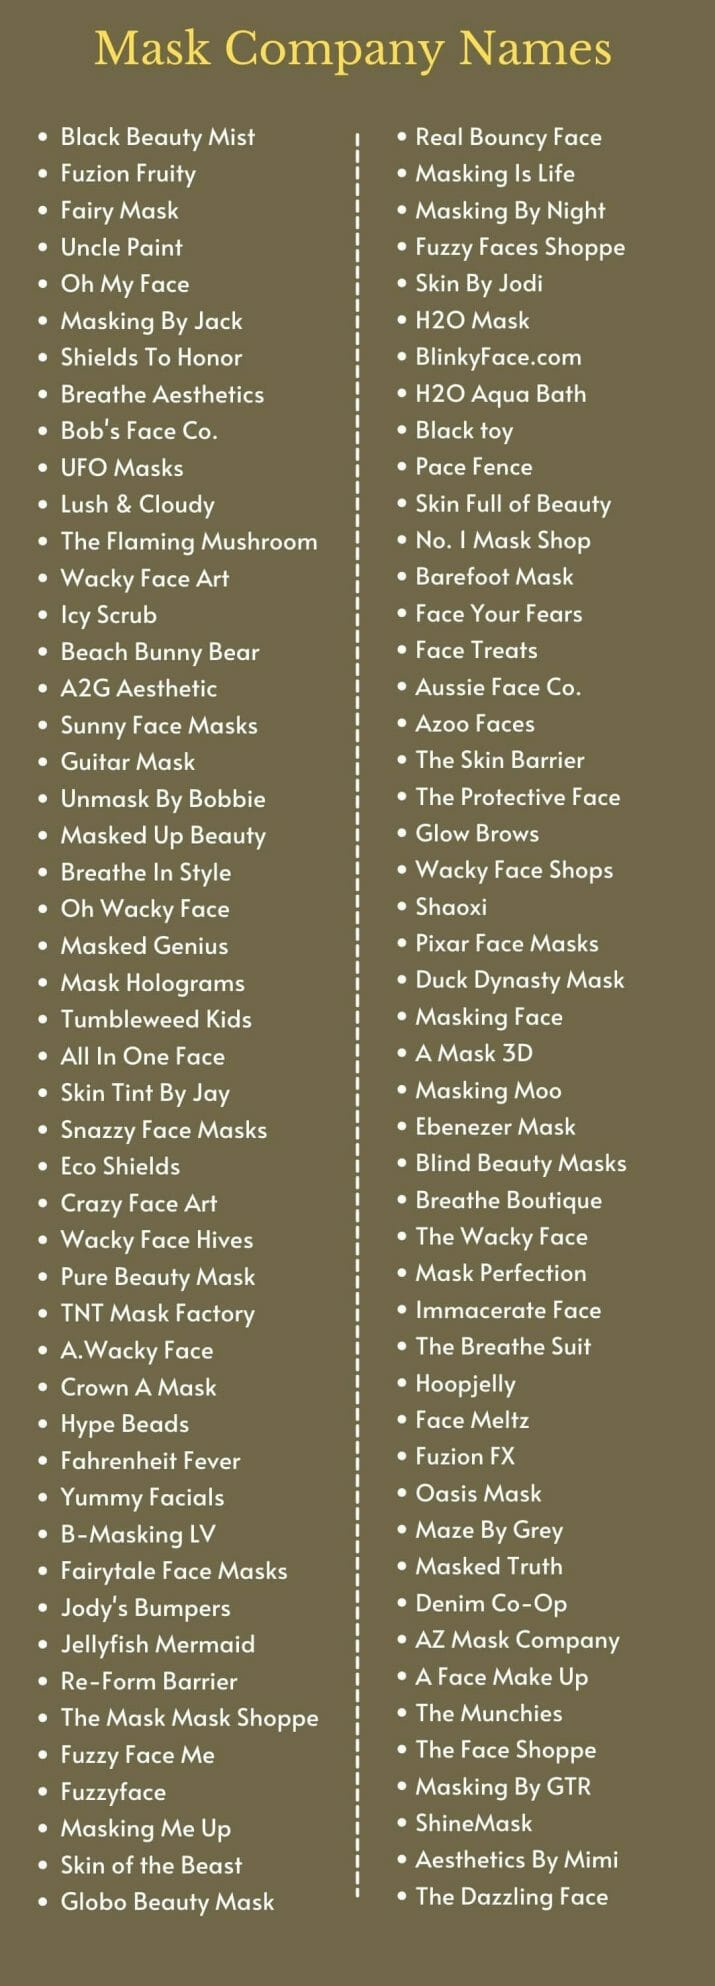 Mask Company Names: Infographic